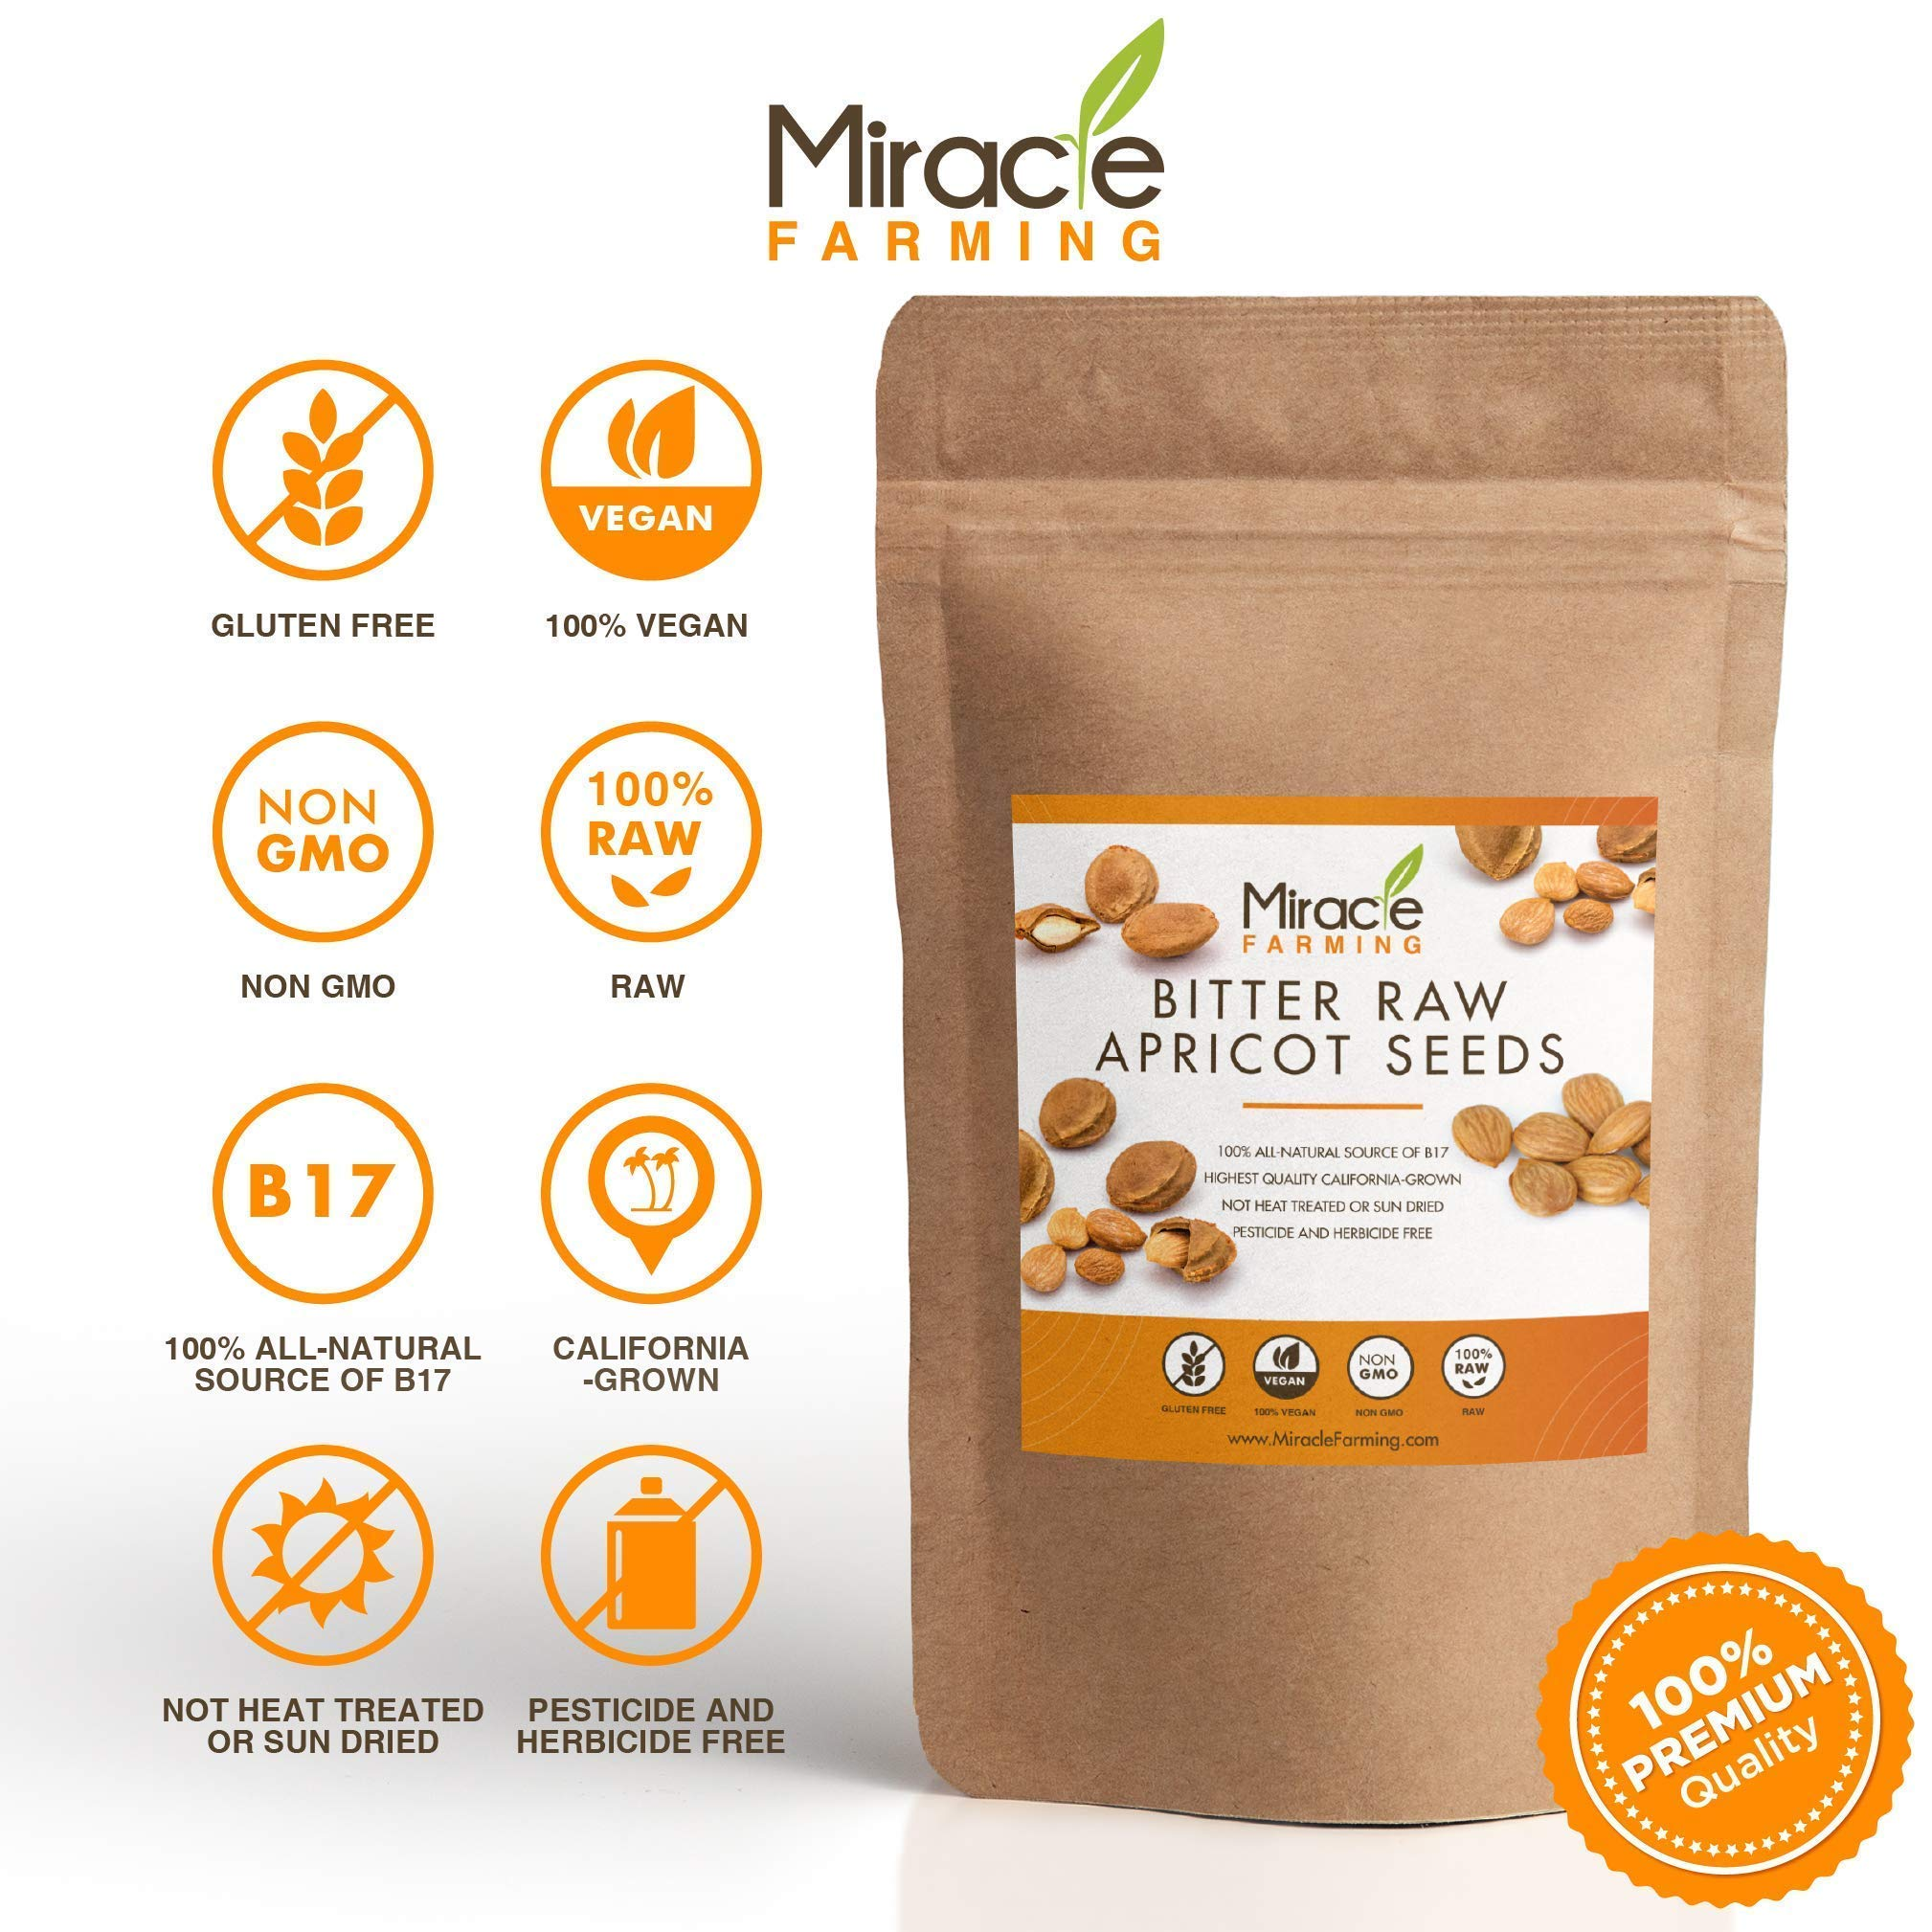 Bitter Apricot Seeds / Kernels, California USA Grown, Pesticide and Herbicide-Free, Non GMO, Vegan, Raw & Large, The Best Natural Source of Vitamin B17, In an Easy Resealable Pouch by Miracle Farming (Image #3)